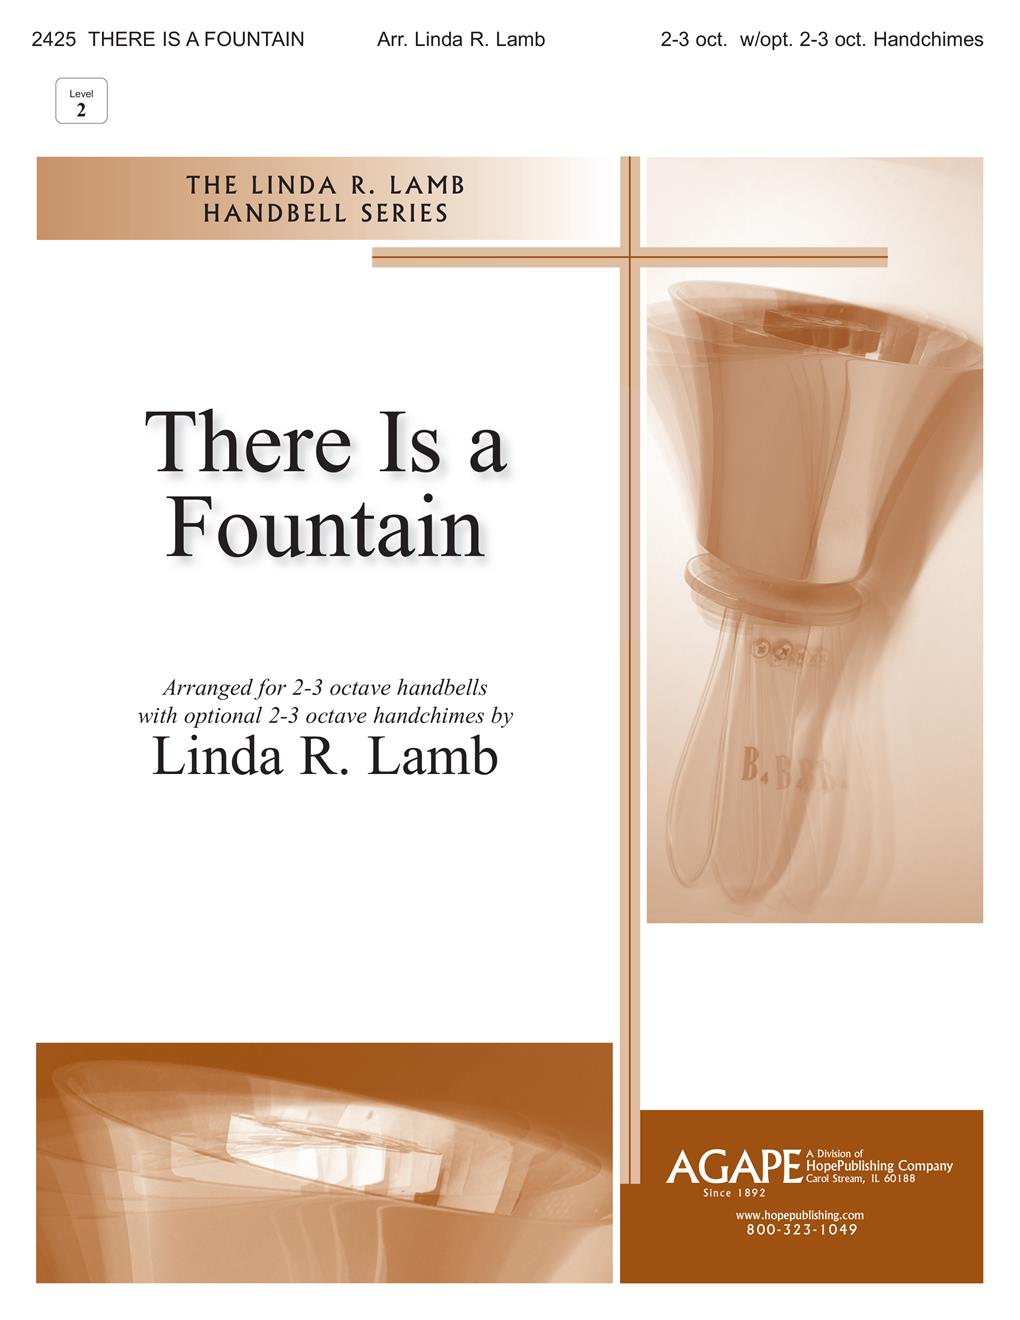 There Is a Fountain - 2-3 Oct. Handbell Cover Image